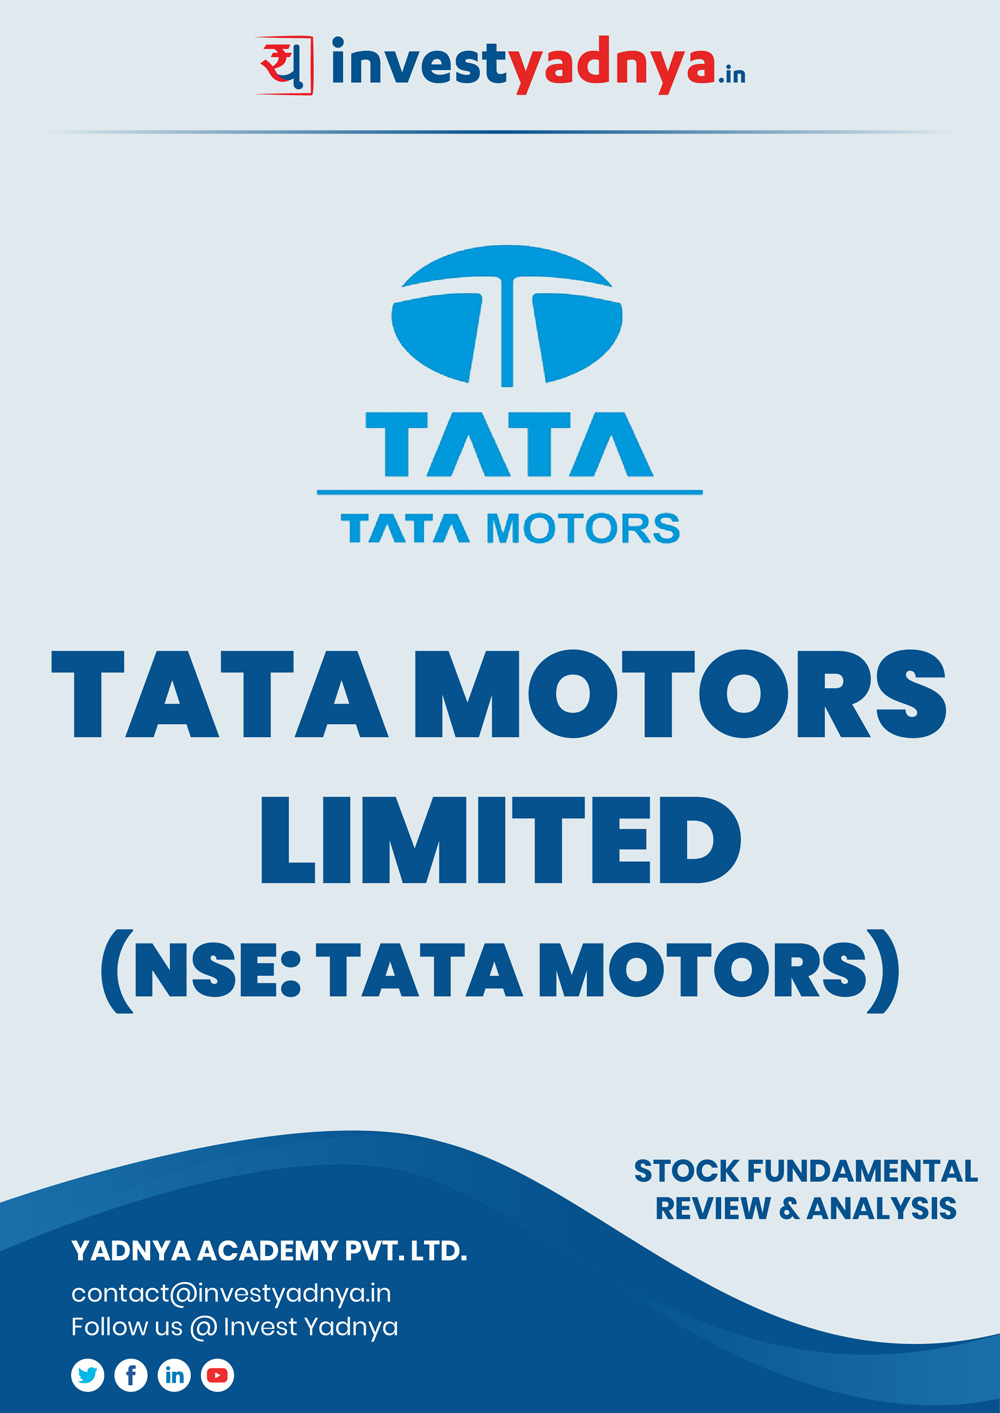 This e-book contains in-depth fundamental analysis of Tata Motors considering both Financial and Equity Research Parameters. It reviews the company, industry competitors, shareholding pattern, financials, and annual performance. ✔ Detailed Research ✔ Quality Reports